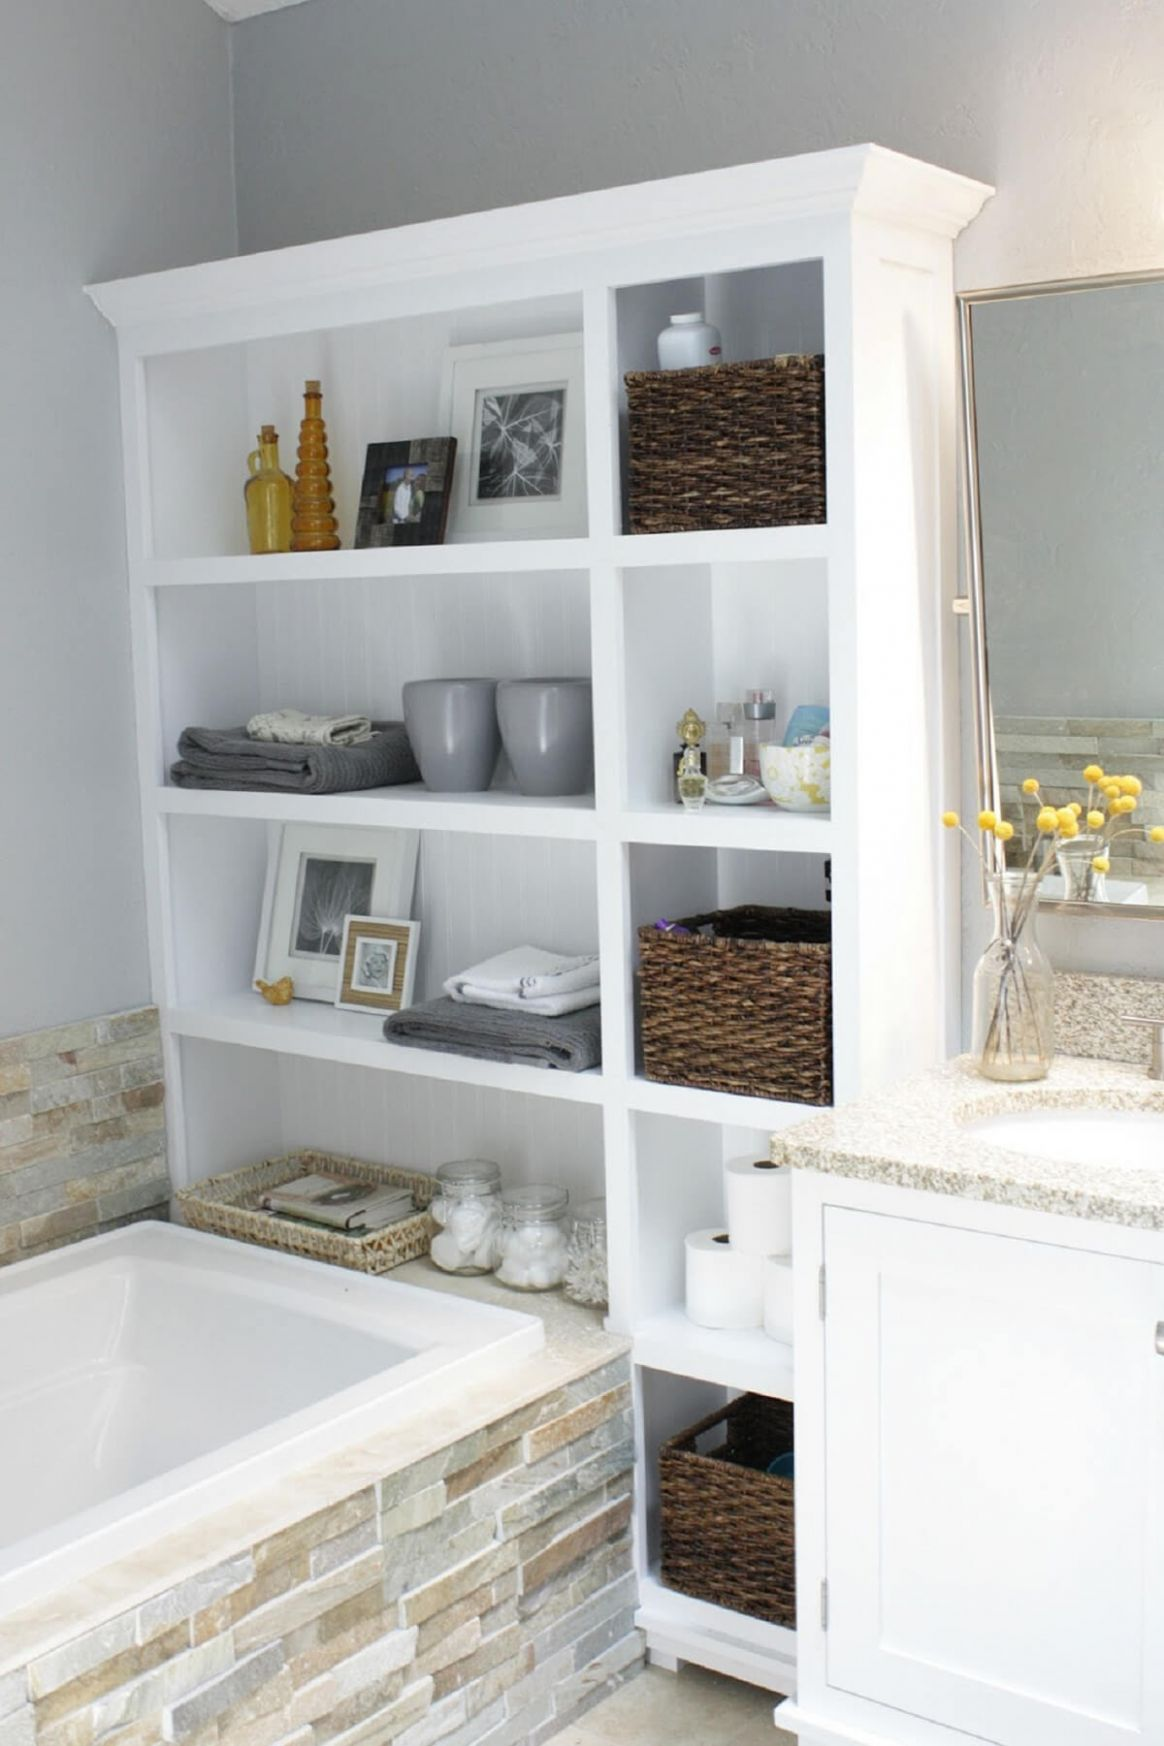 12 Best Small Bathroom Storage Ideas and Tips for 12 - bathroom ideas for storage